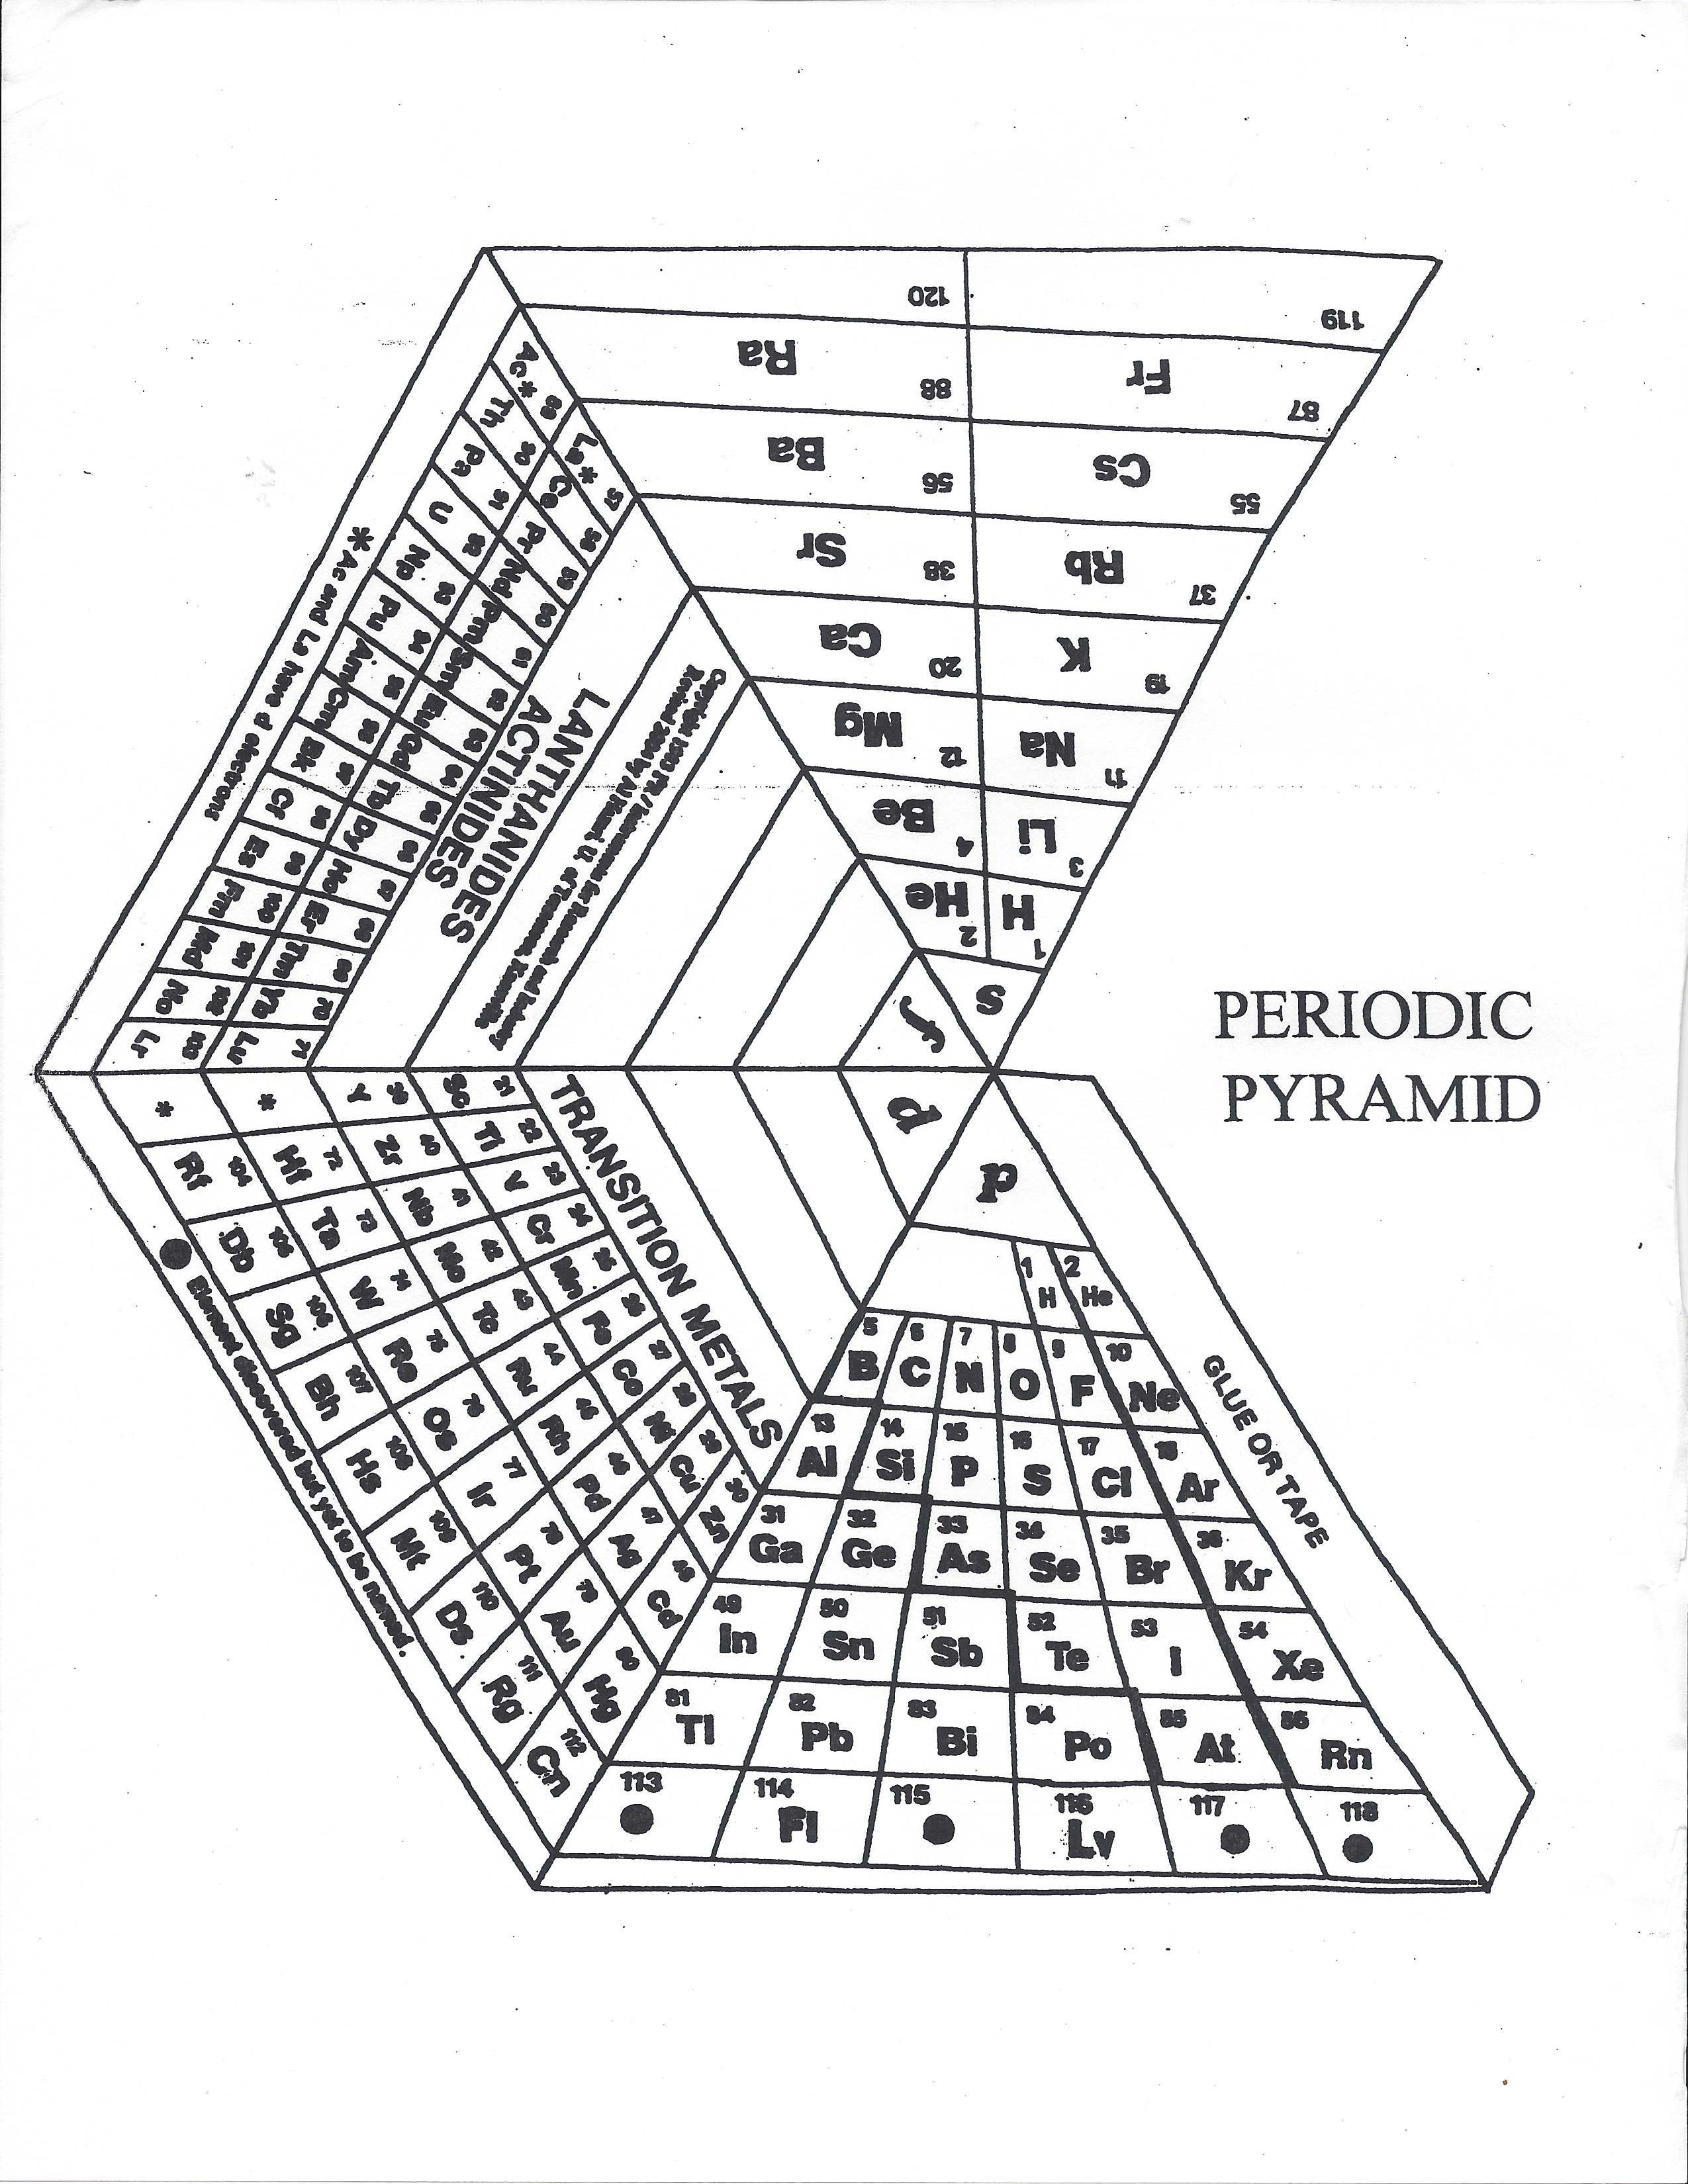 Foldable Periodic Pyramid Table Of Elements You Can Even Color It